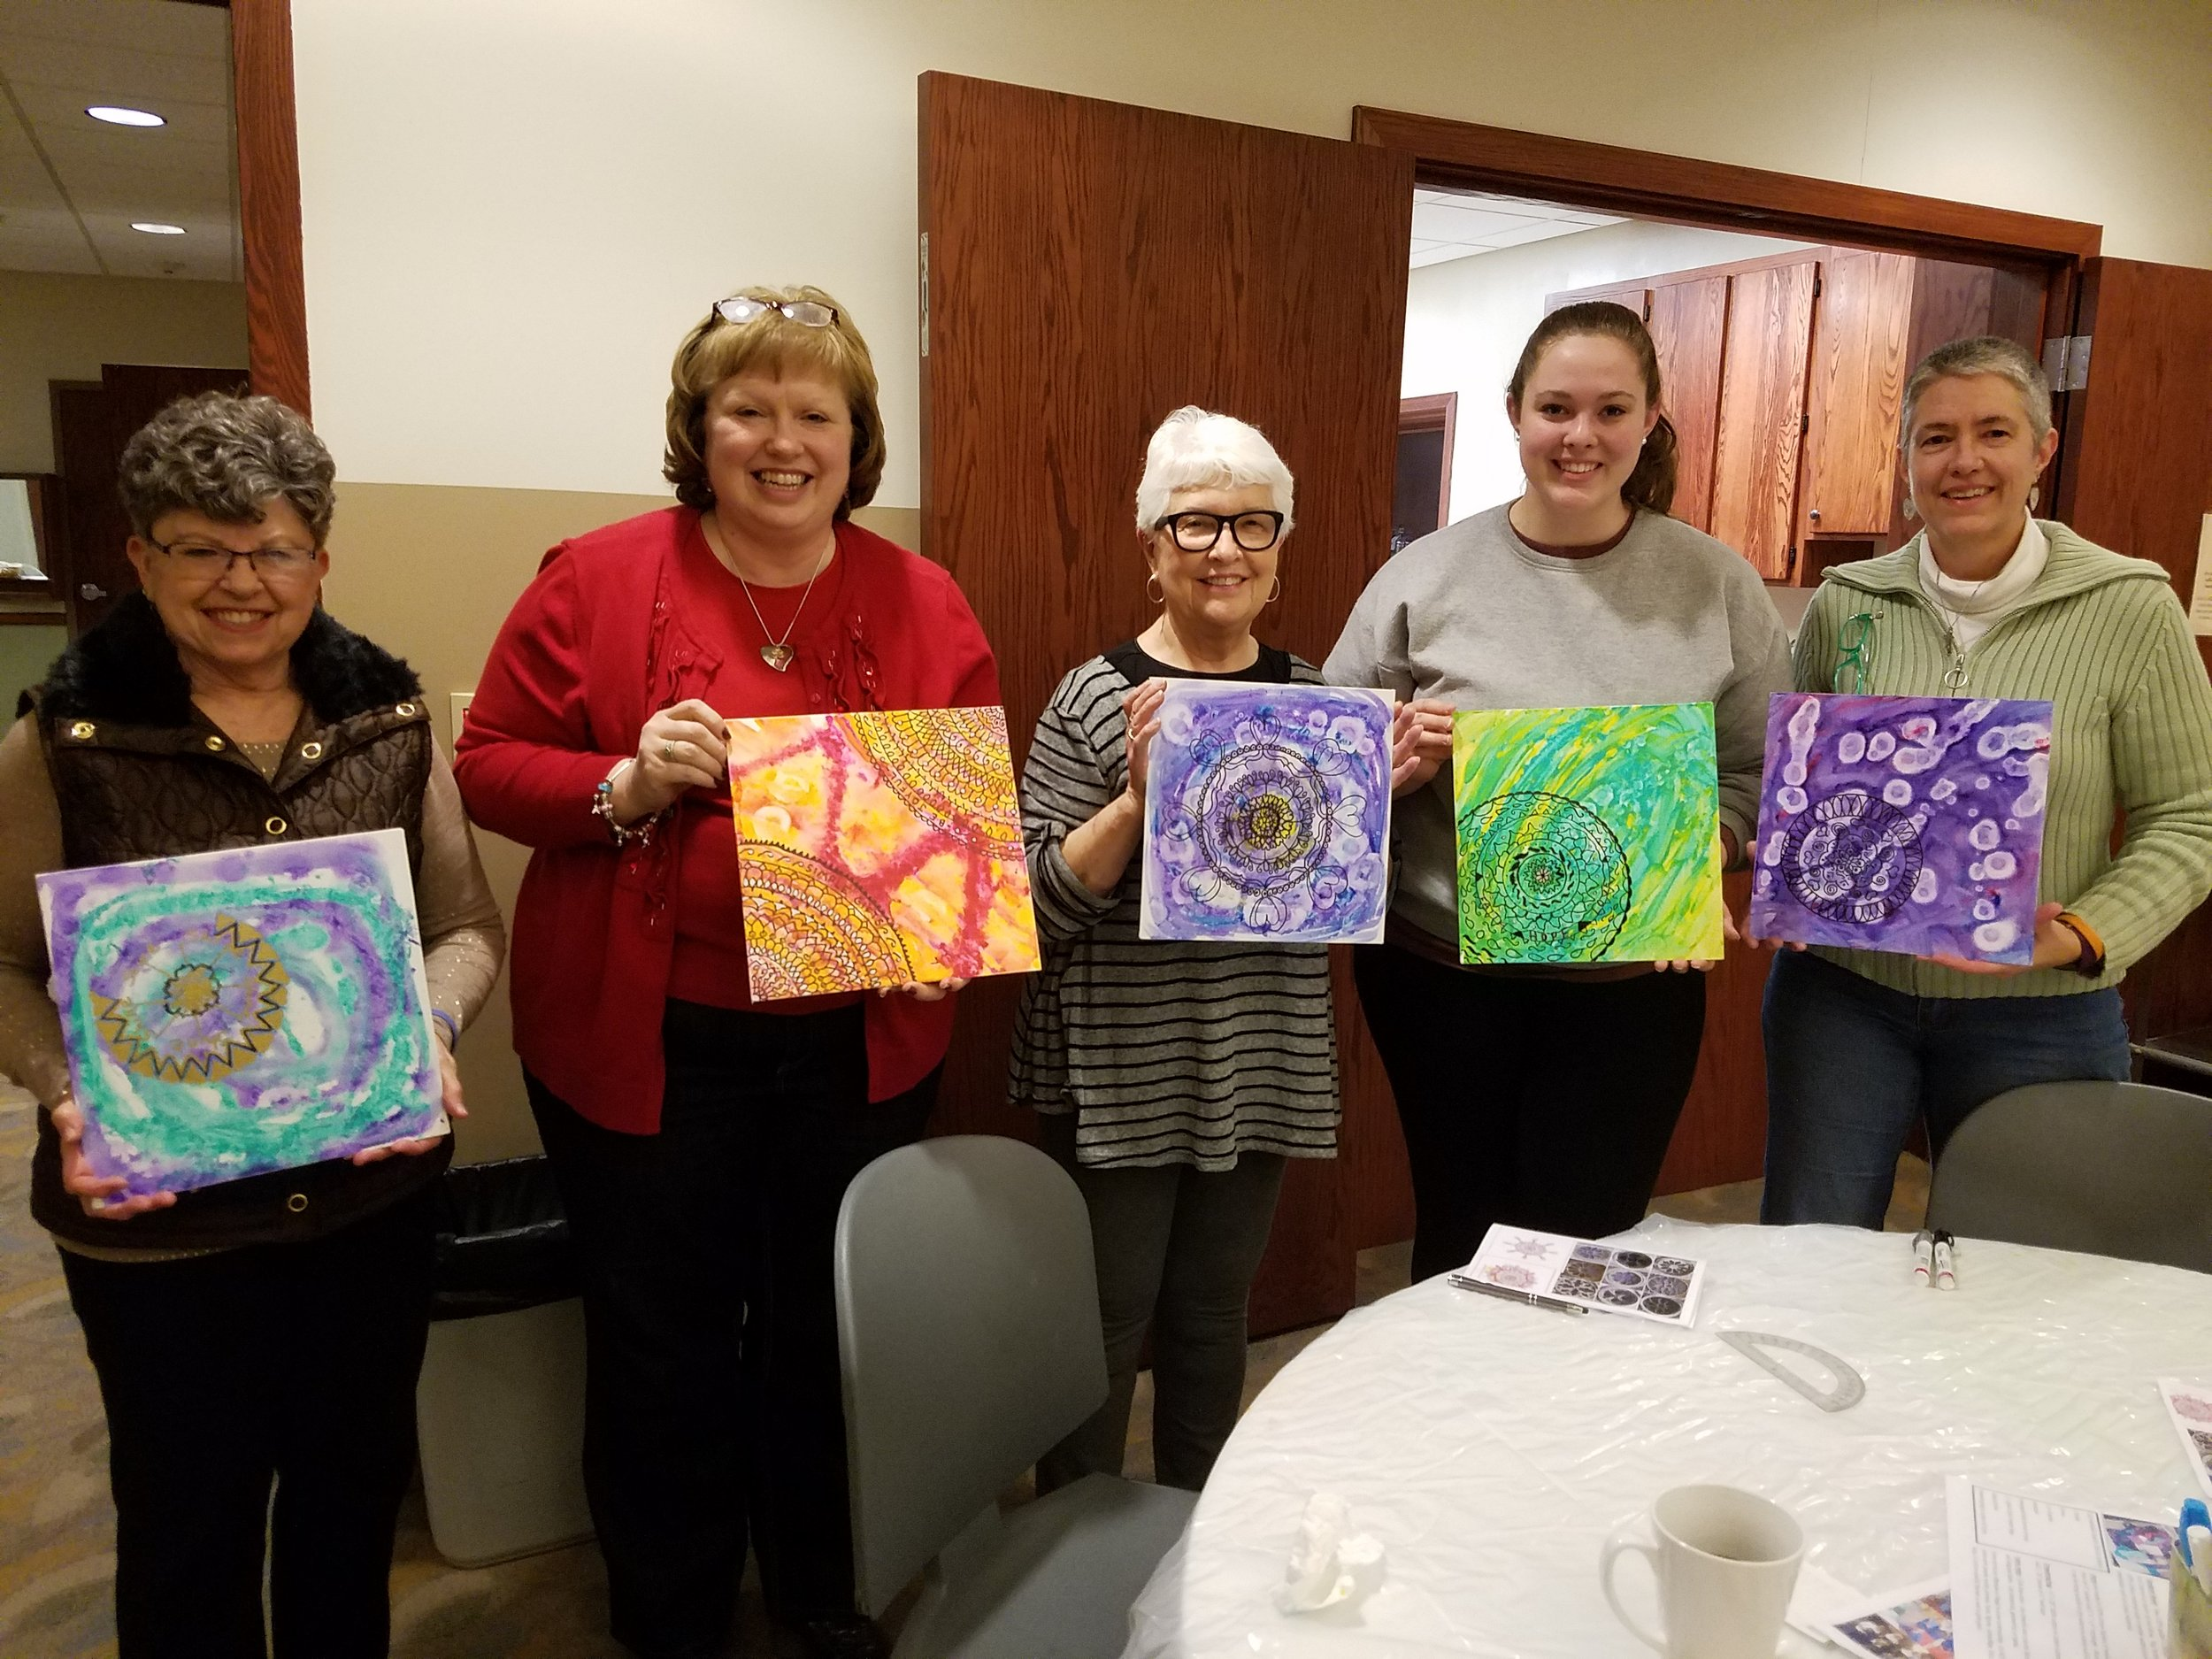 Painting Party February 13, 2017